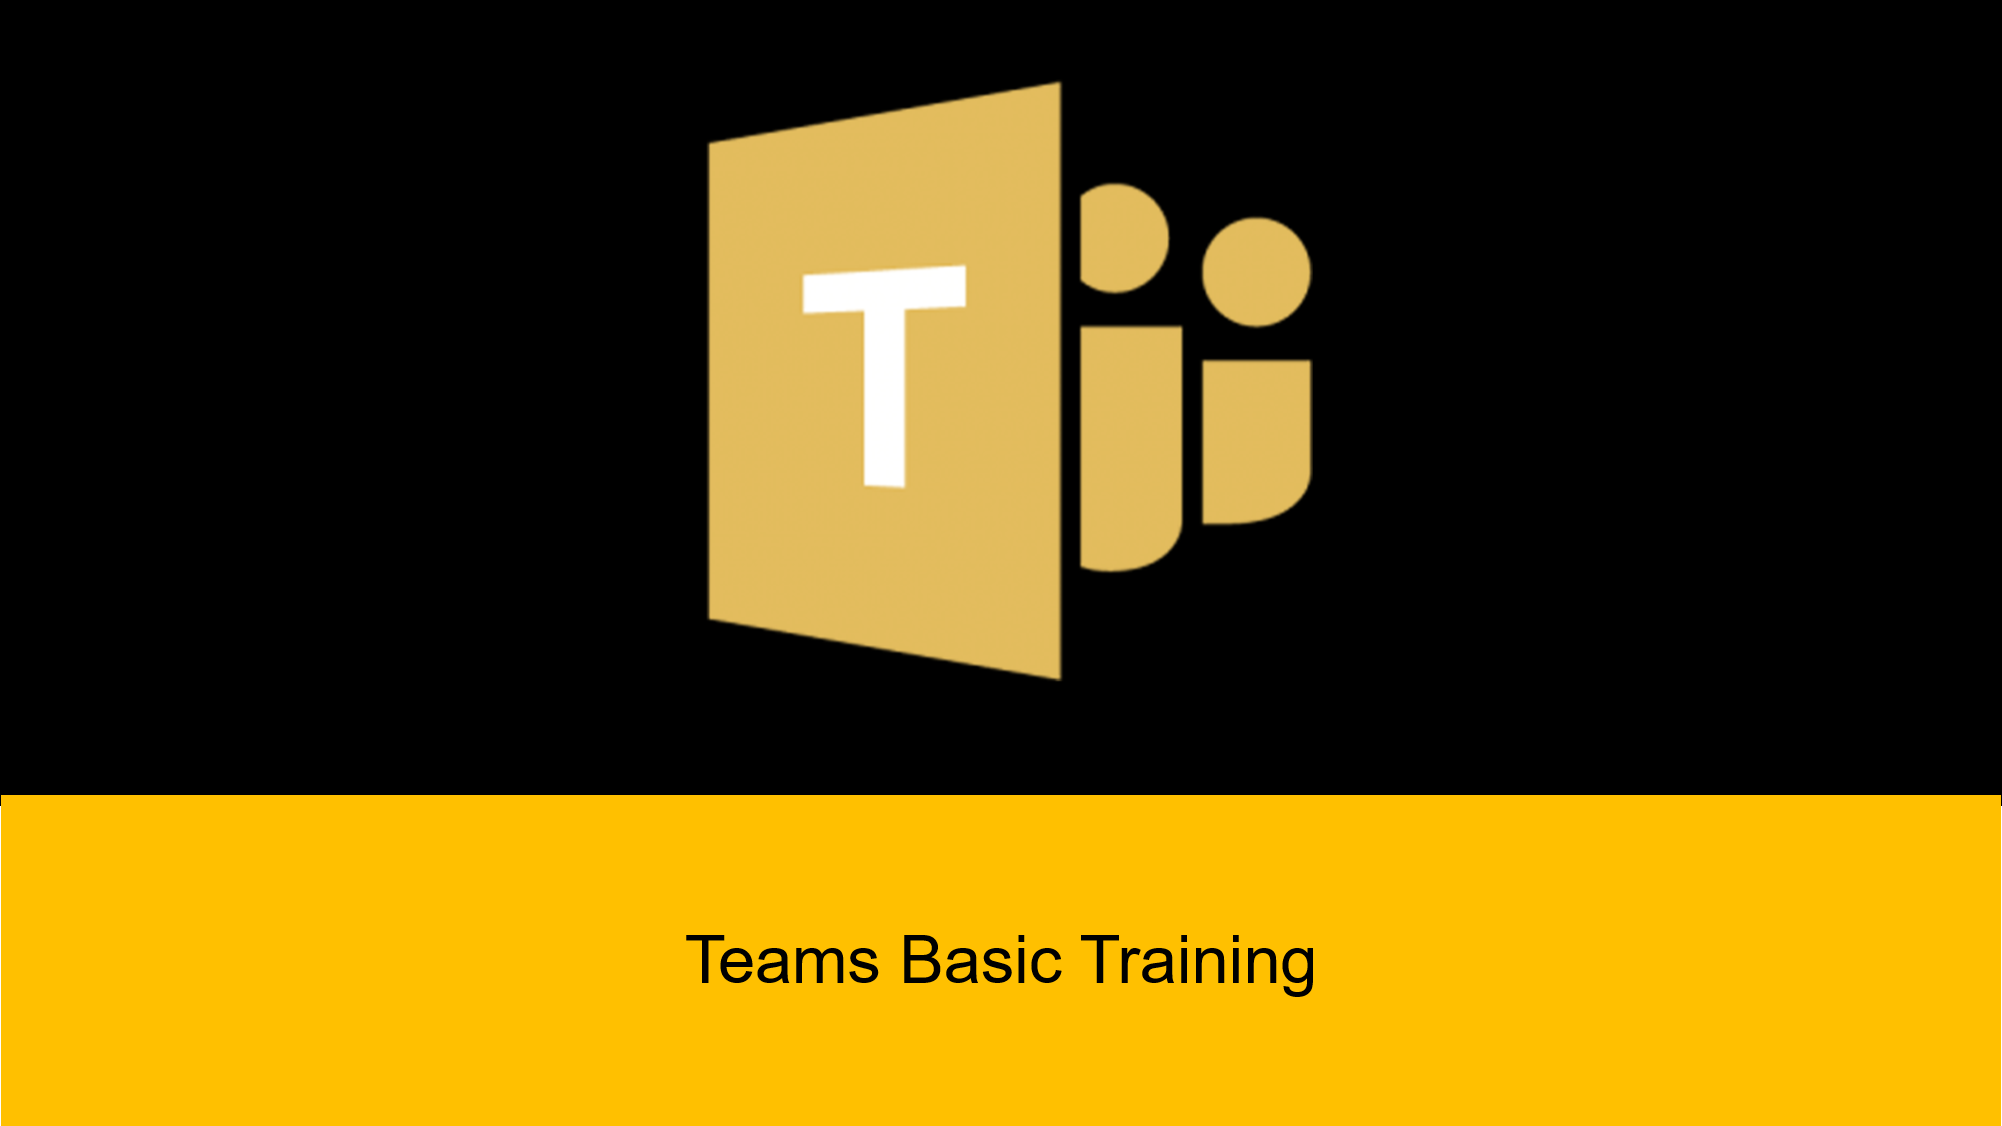 I will provide basic training on Microsoft Teams